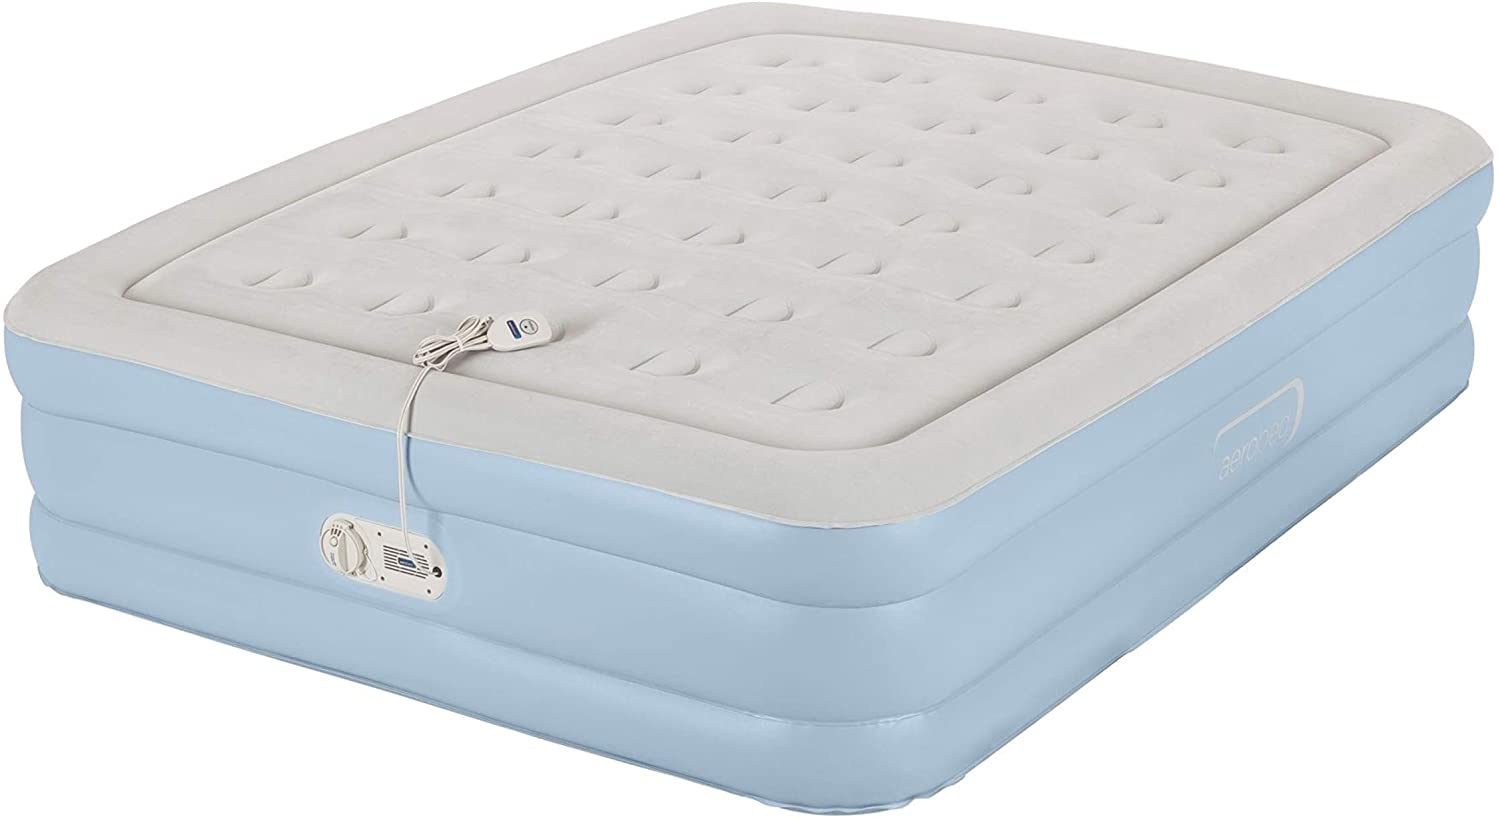 AeroBed One-Touch Queen Air Mattress